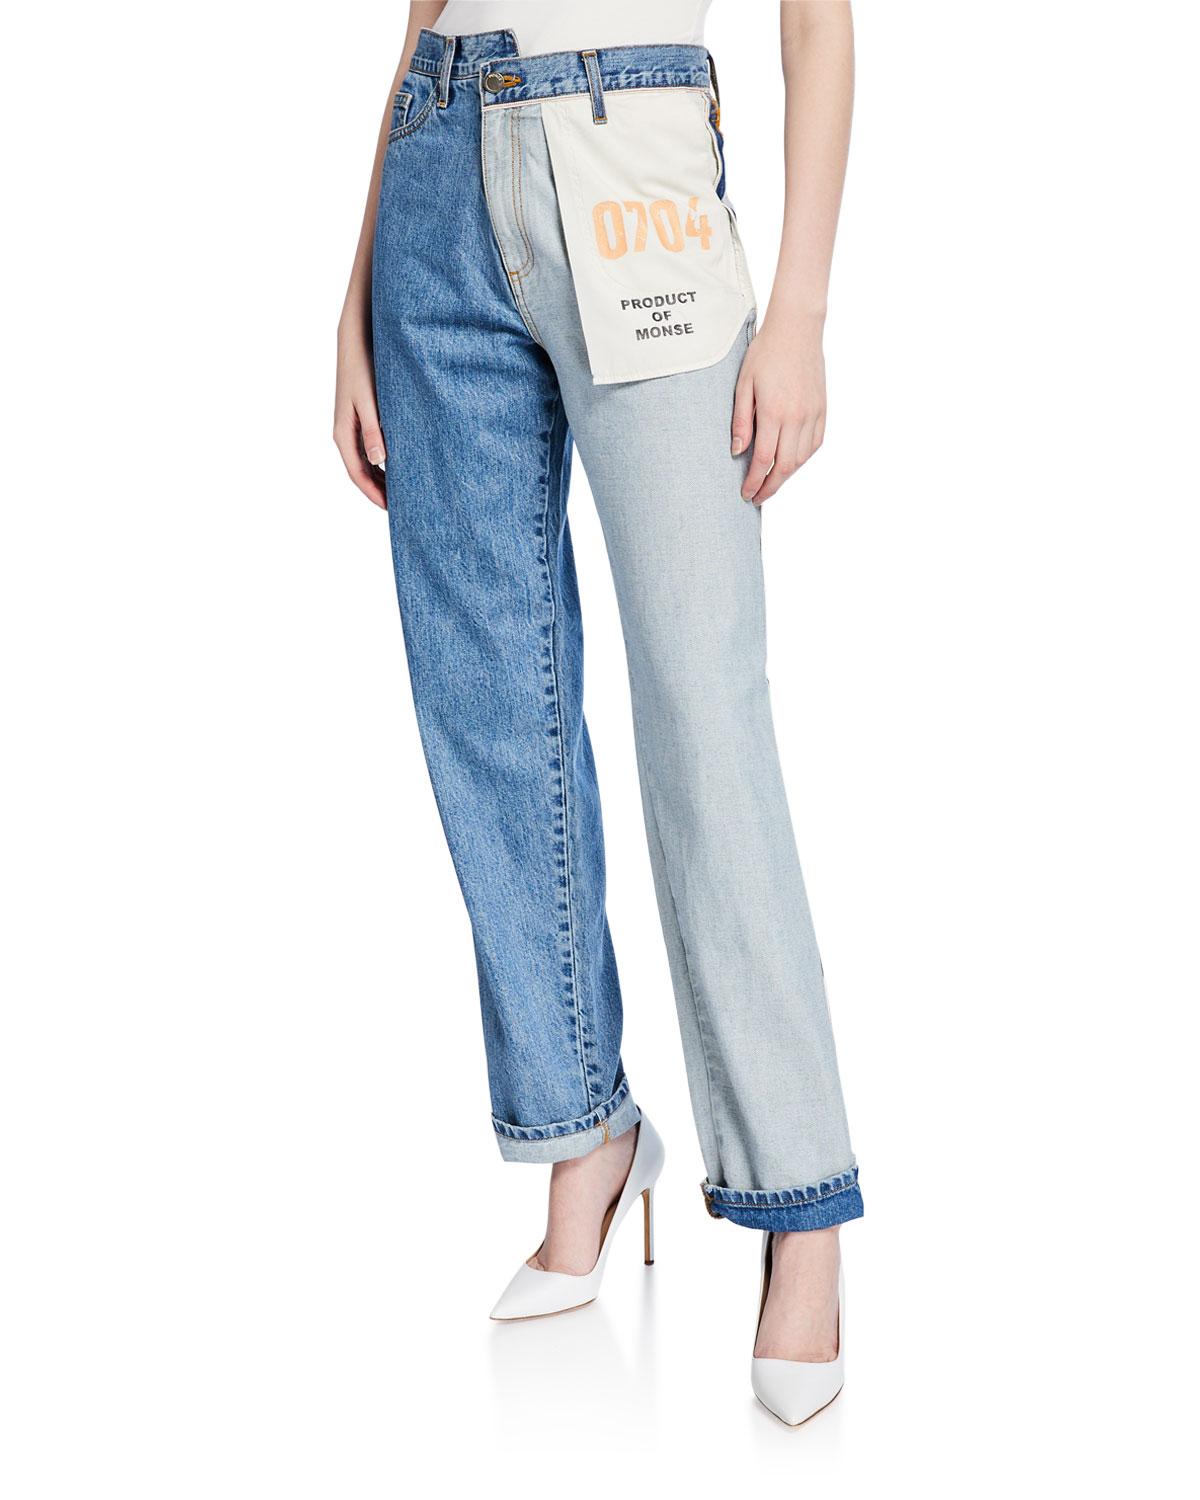 Jeans Trends 2020.Asymmetric Inside Out Pocket Jeans